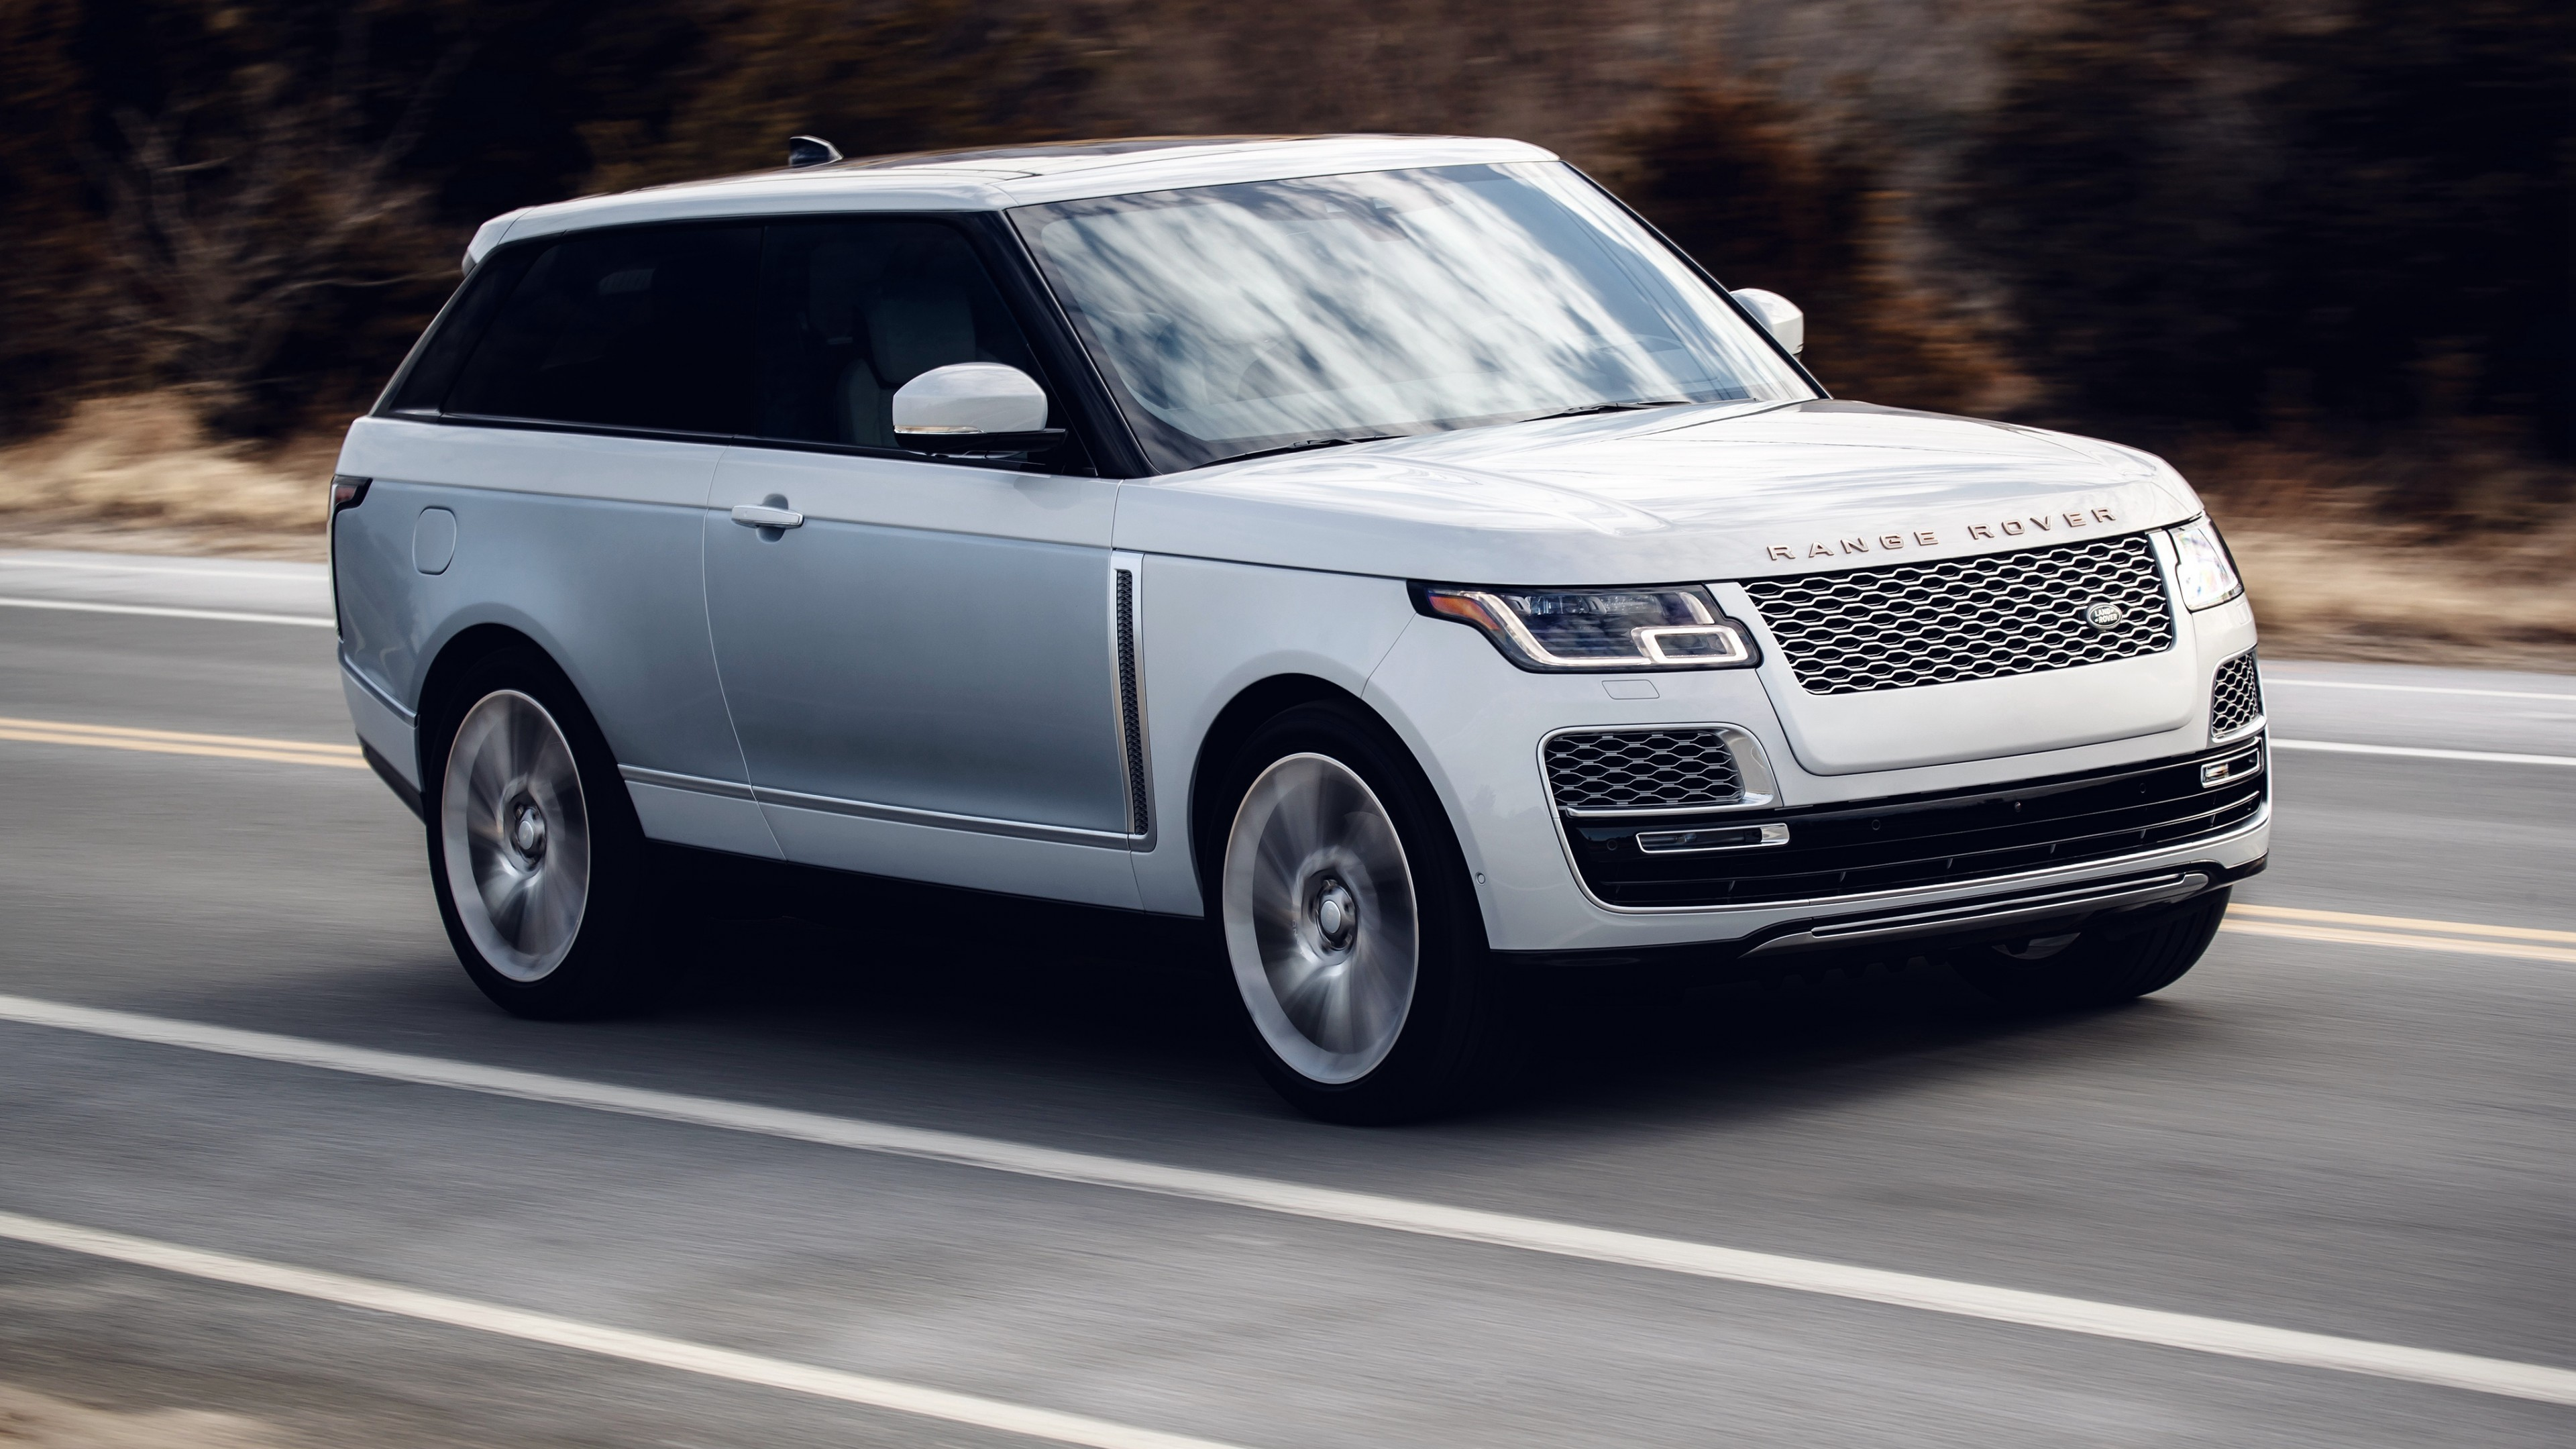 2019 range rover sv coupe 4k 2 wallpaper hd car wallpapers id 10050. Black Bedroom Furniture Sets. Home Design Ideas